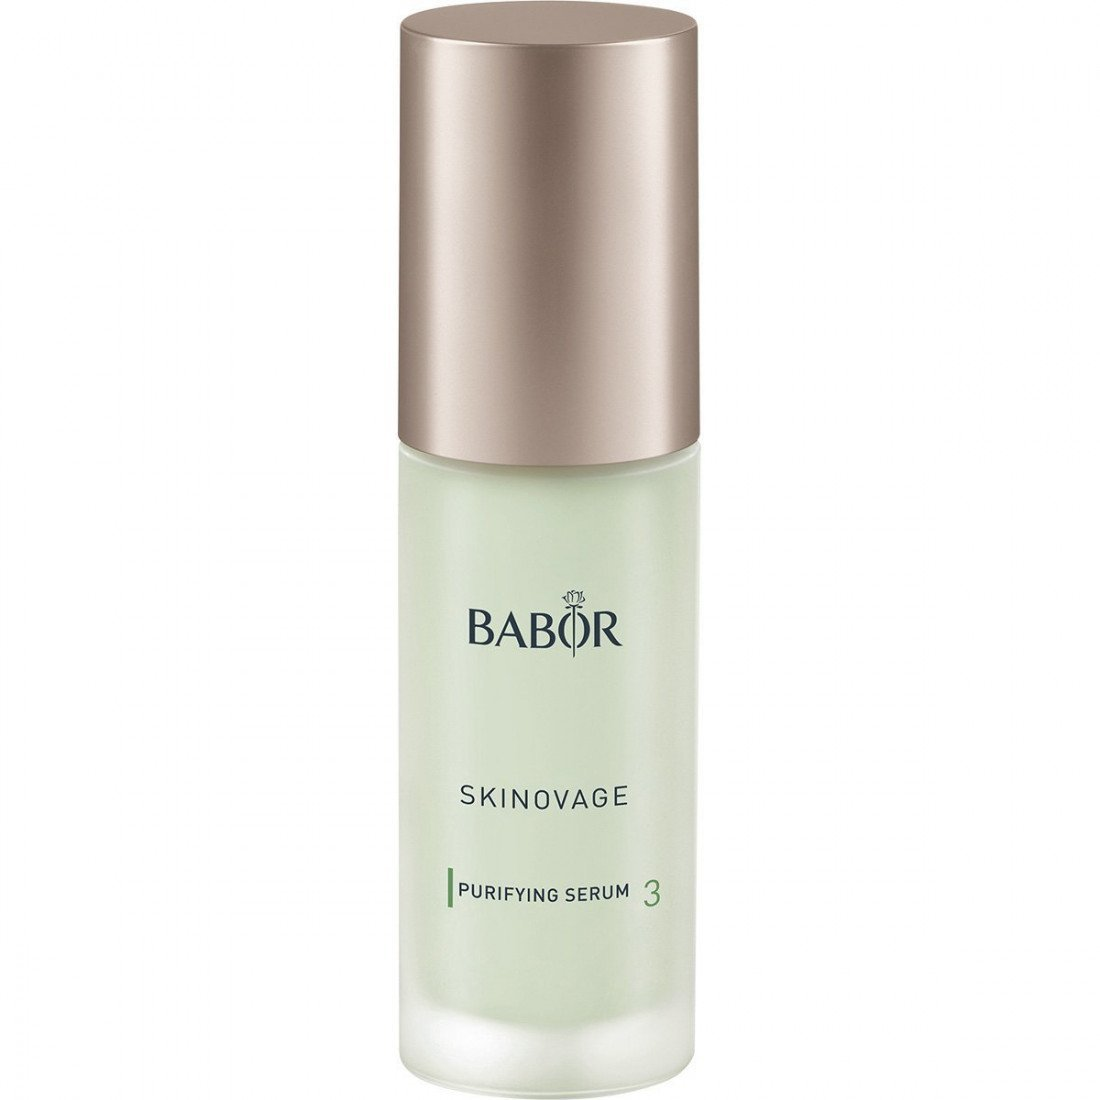 Сыворотка Babor Skinovage Purifying Serum 30ml